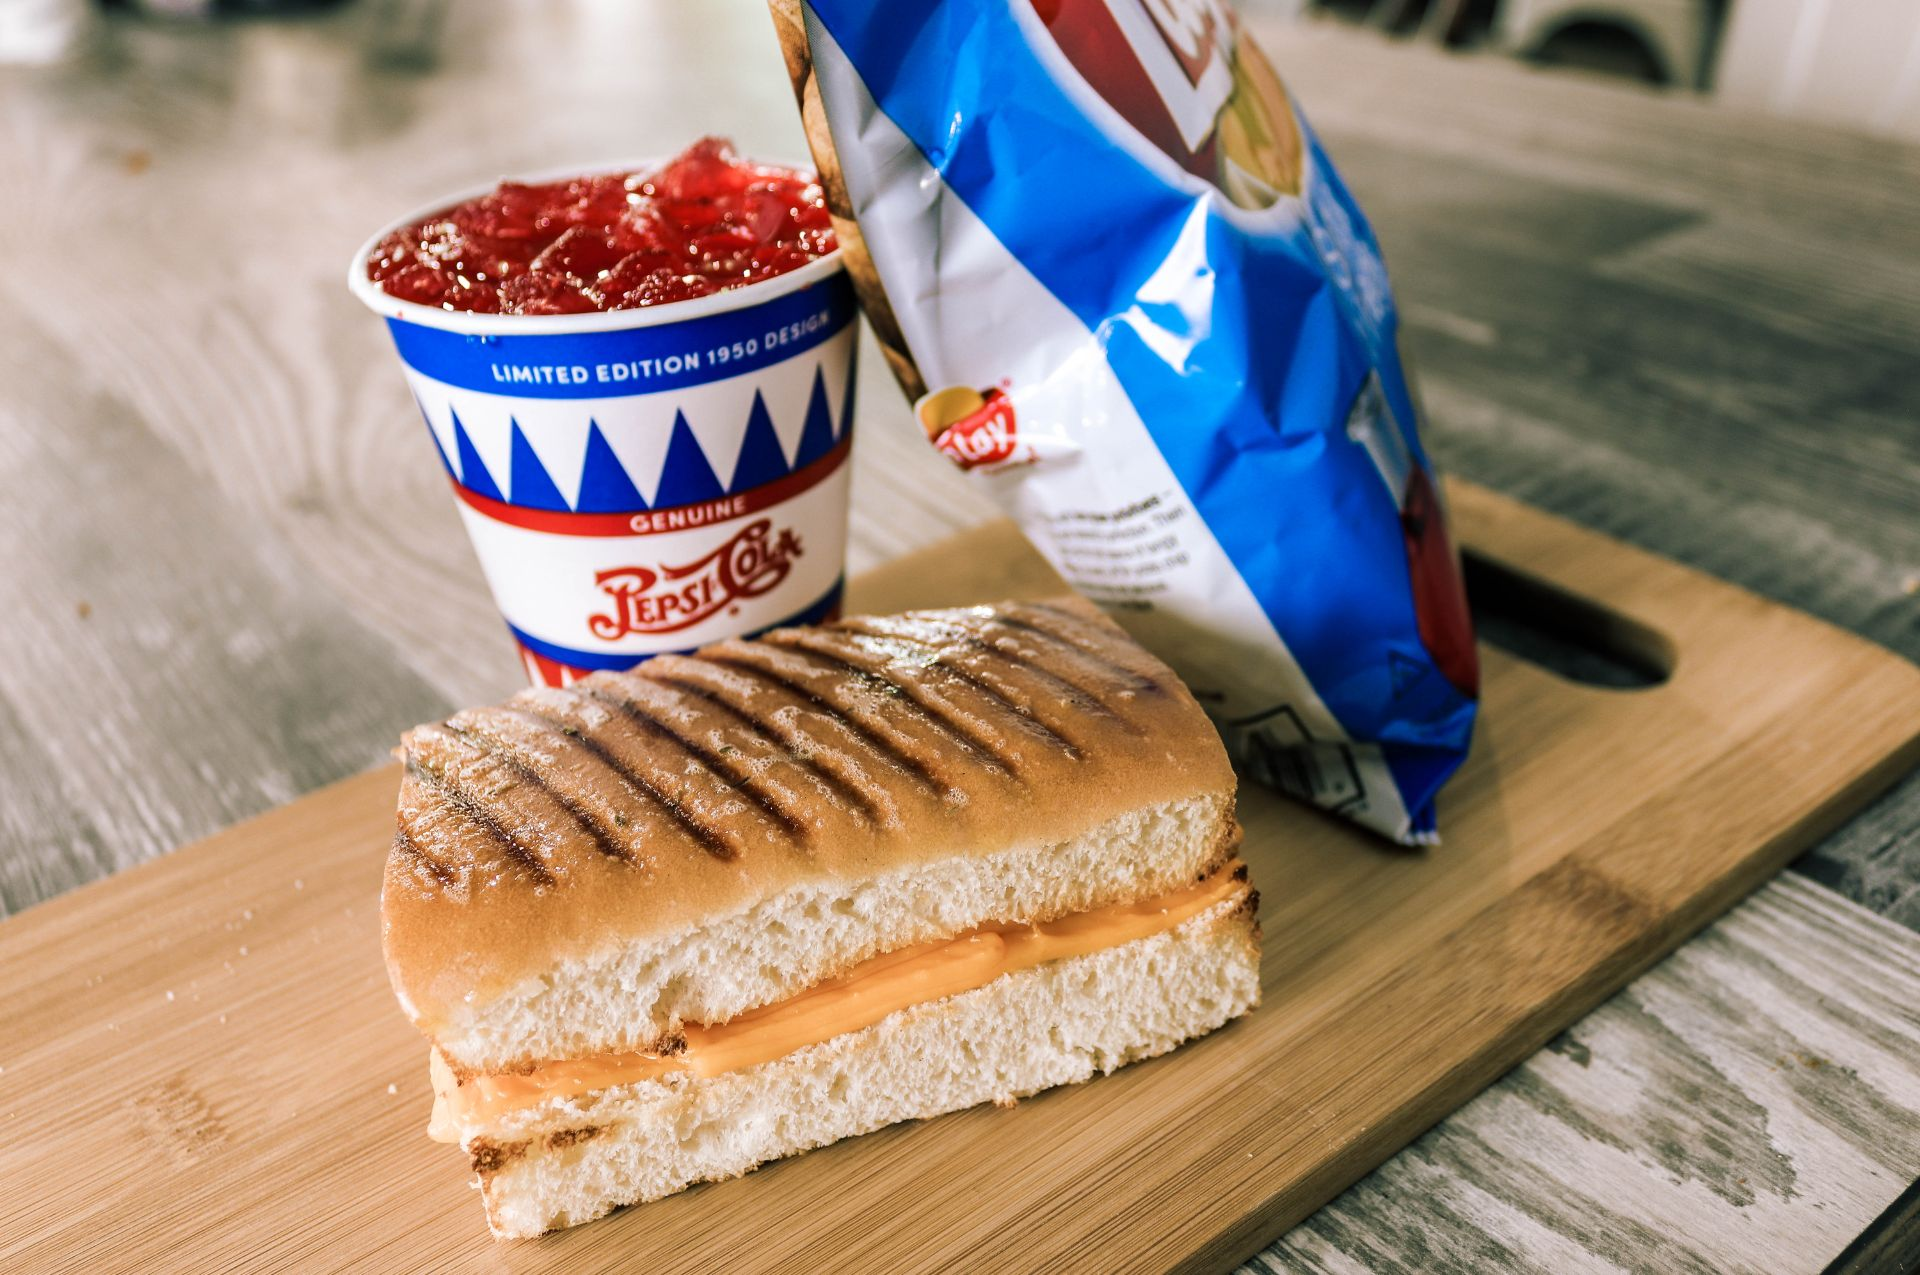 Grilled cheese with fruit punch and a bag of potato chips